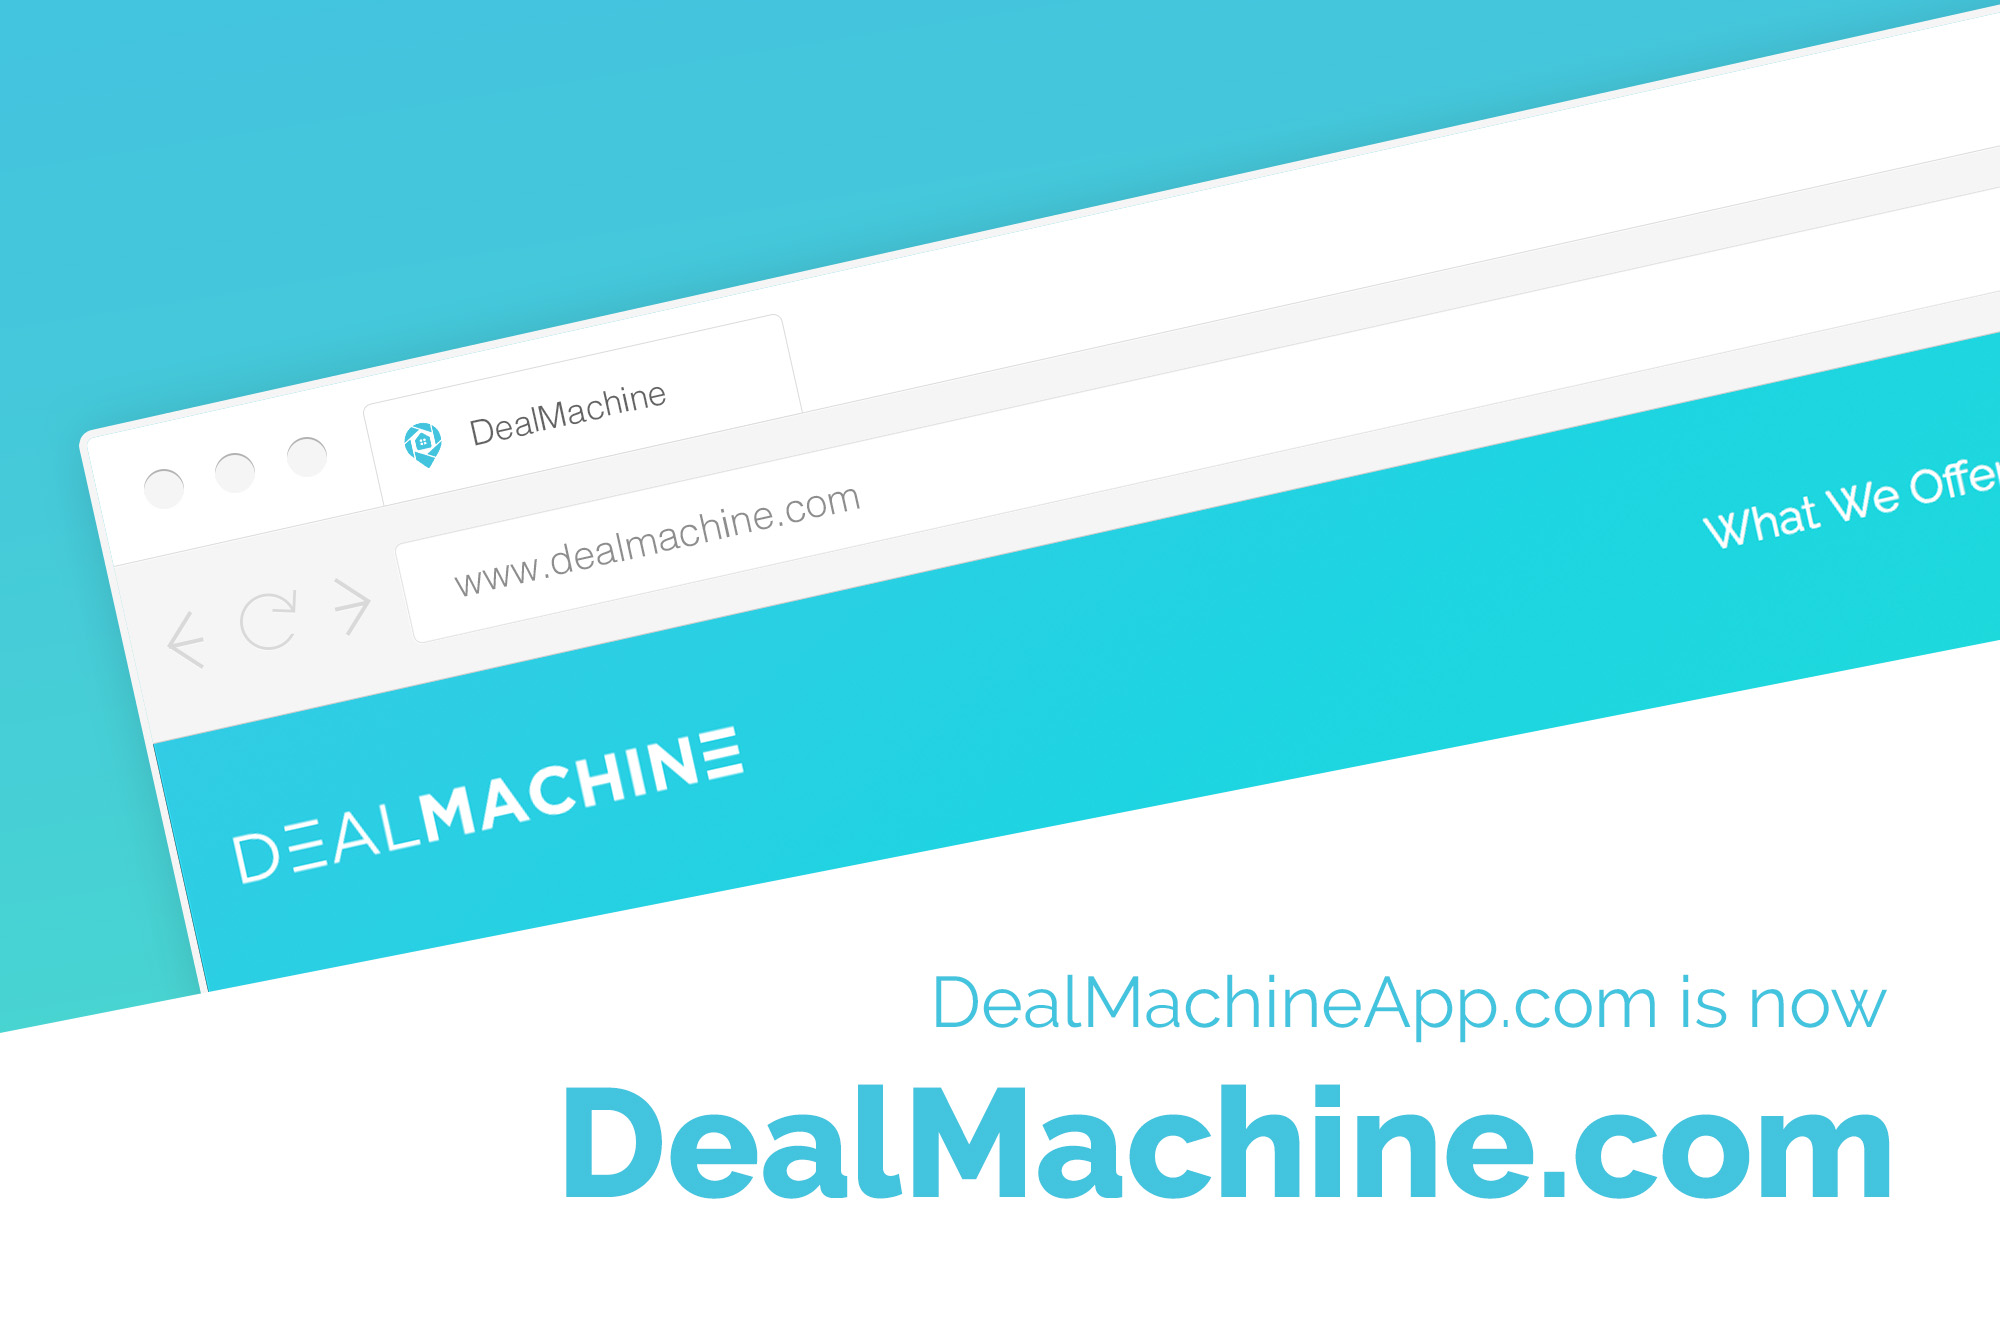 Introducing DealMachine.com (formerly DealMachineApp.com)